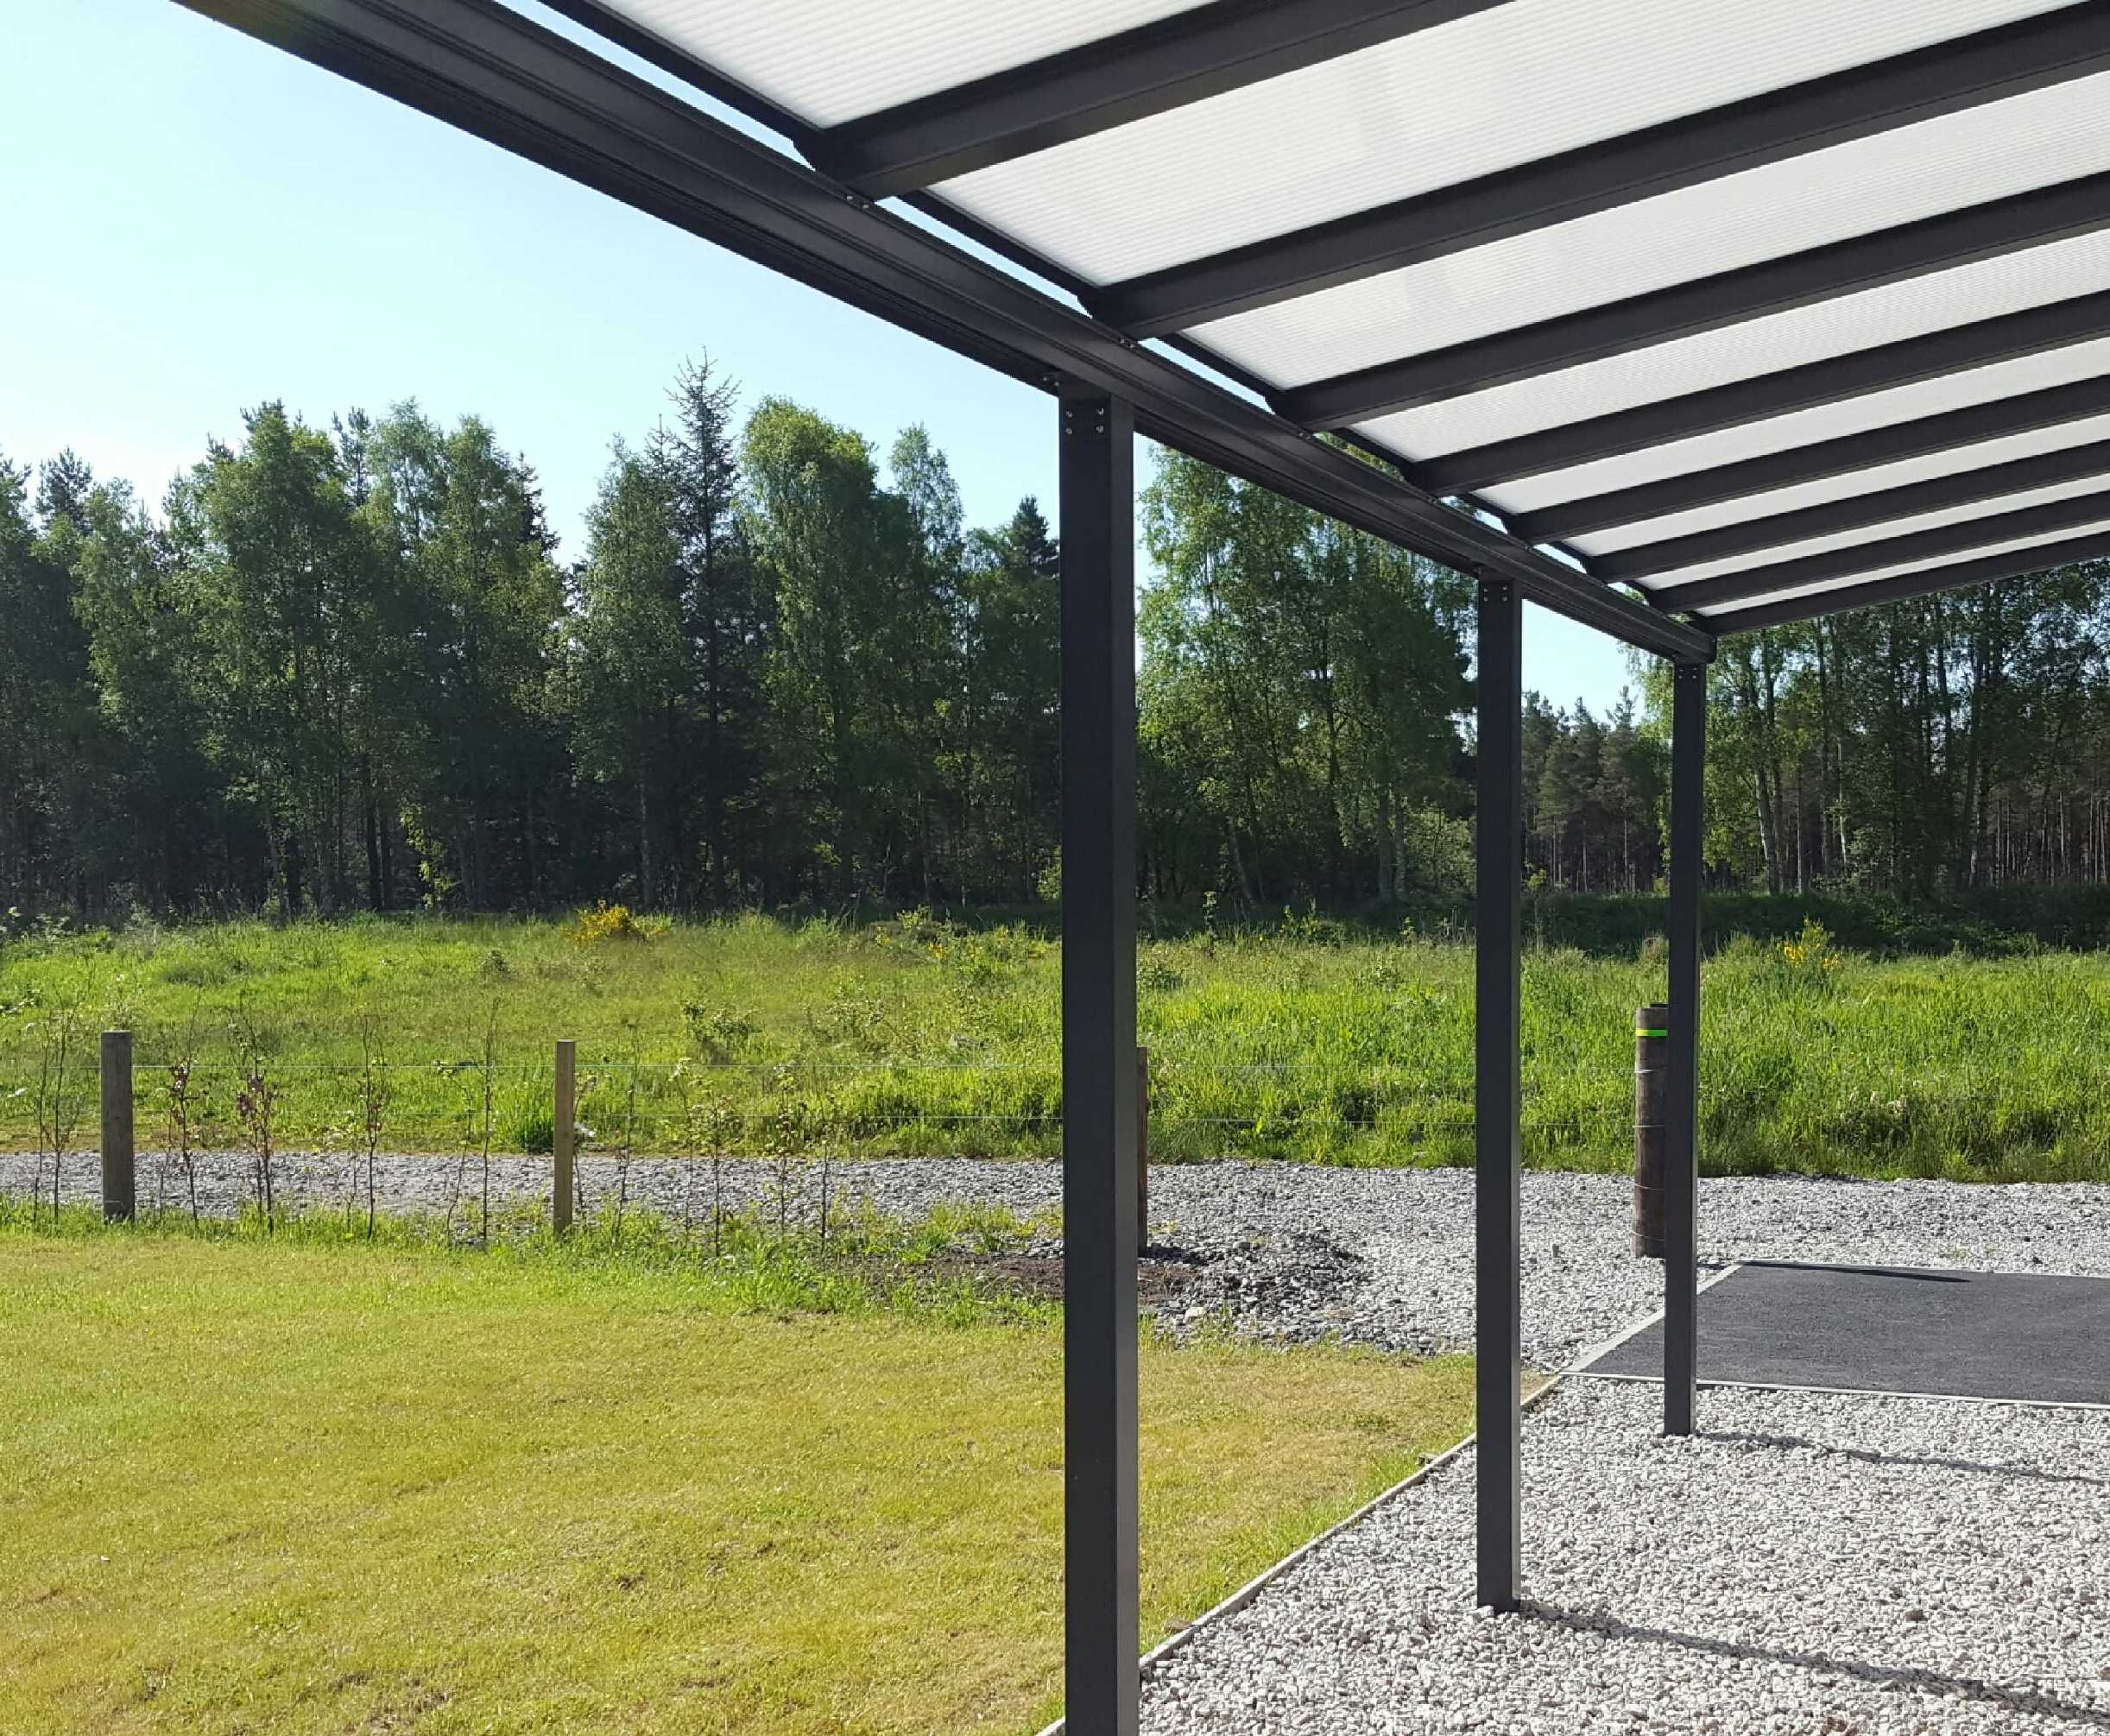 Omega Smart Lean-To Canopy, Anthracite Grey, 16mm Polycarbonate Glazing - 5.6m (W) x 3.5m (P), (3) Supporting Posts